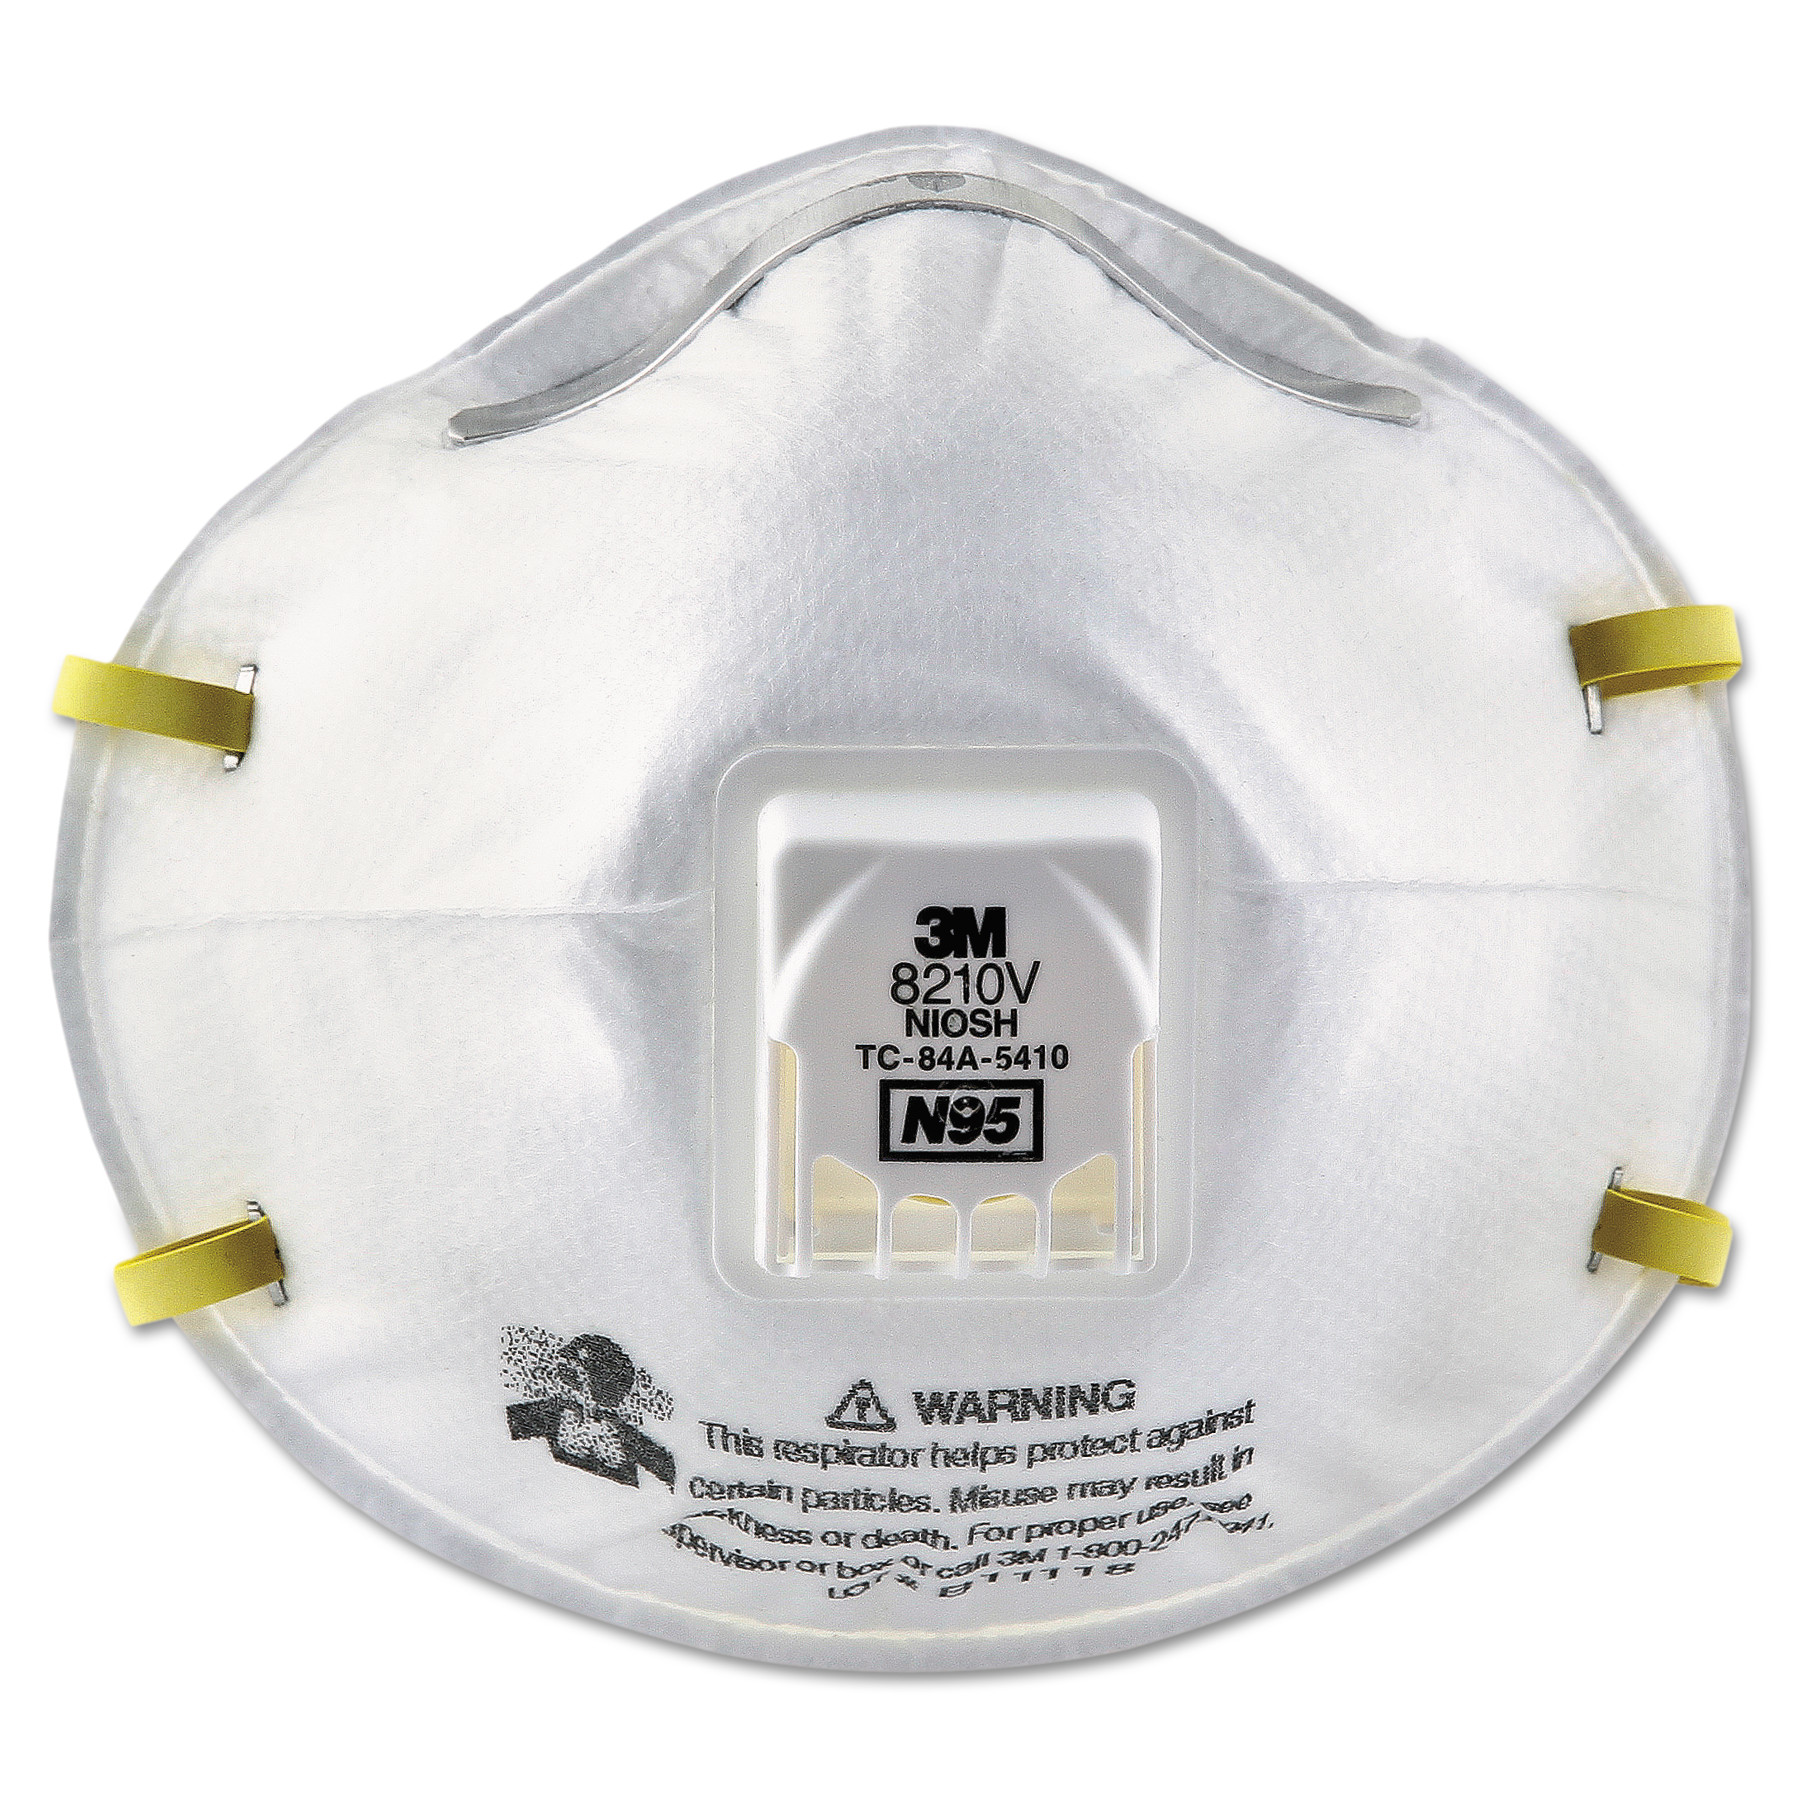 3M Particulate Respirator 8210V, N95, Cool Flow Valve, 80 Box by 3M/COMMERCIAL TAPE DIV.